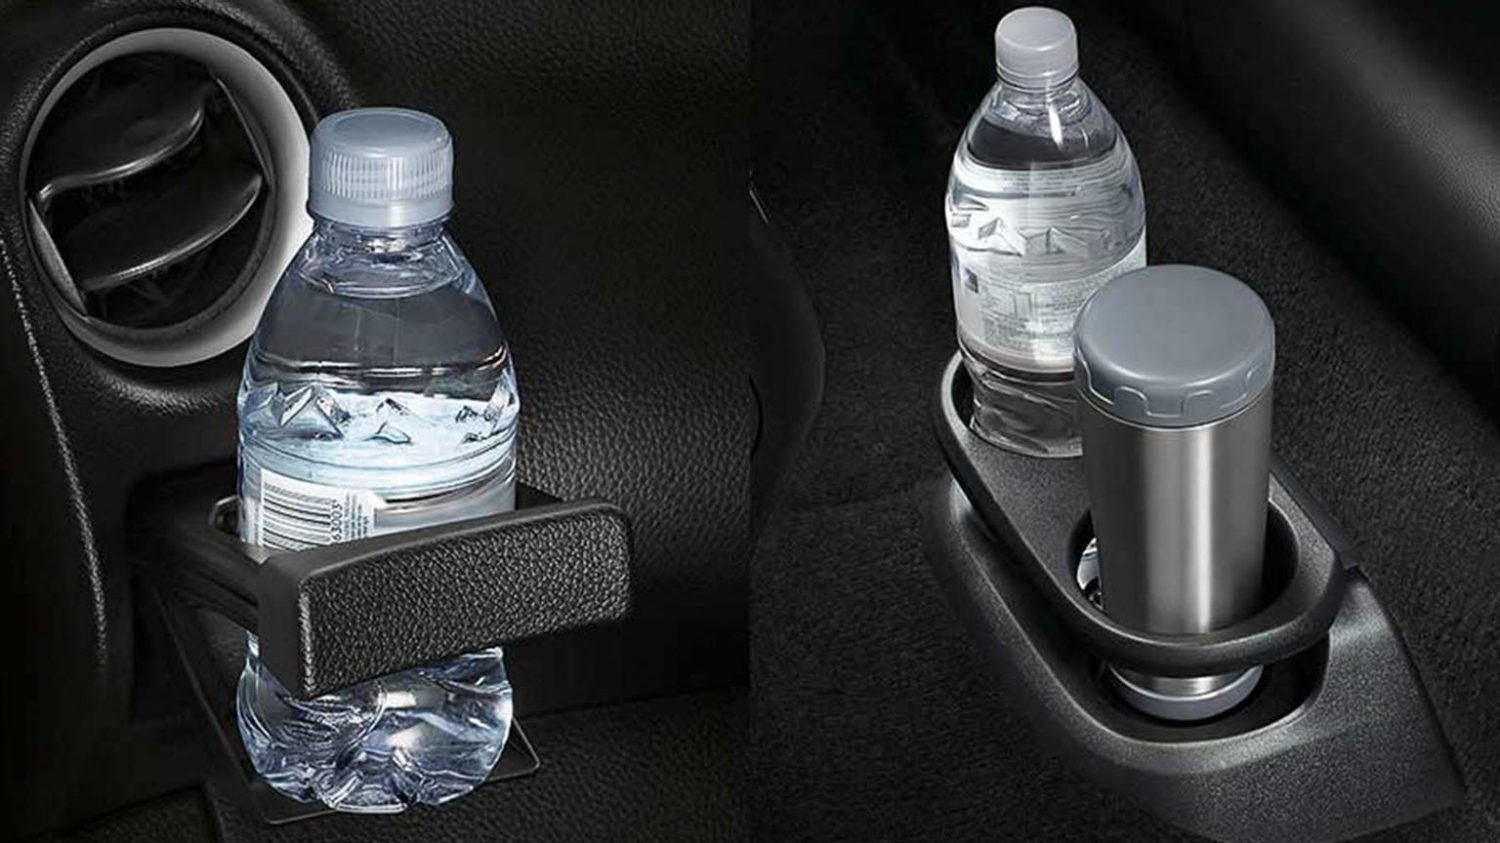 Nissan Navara cup holders holding water bottles